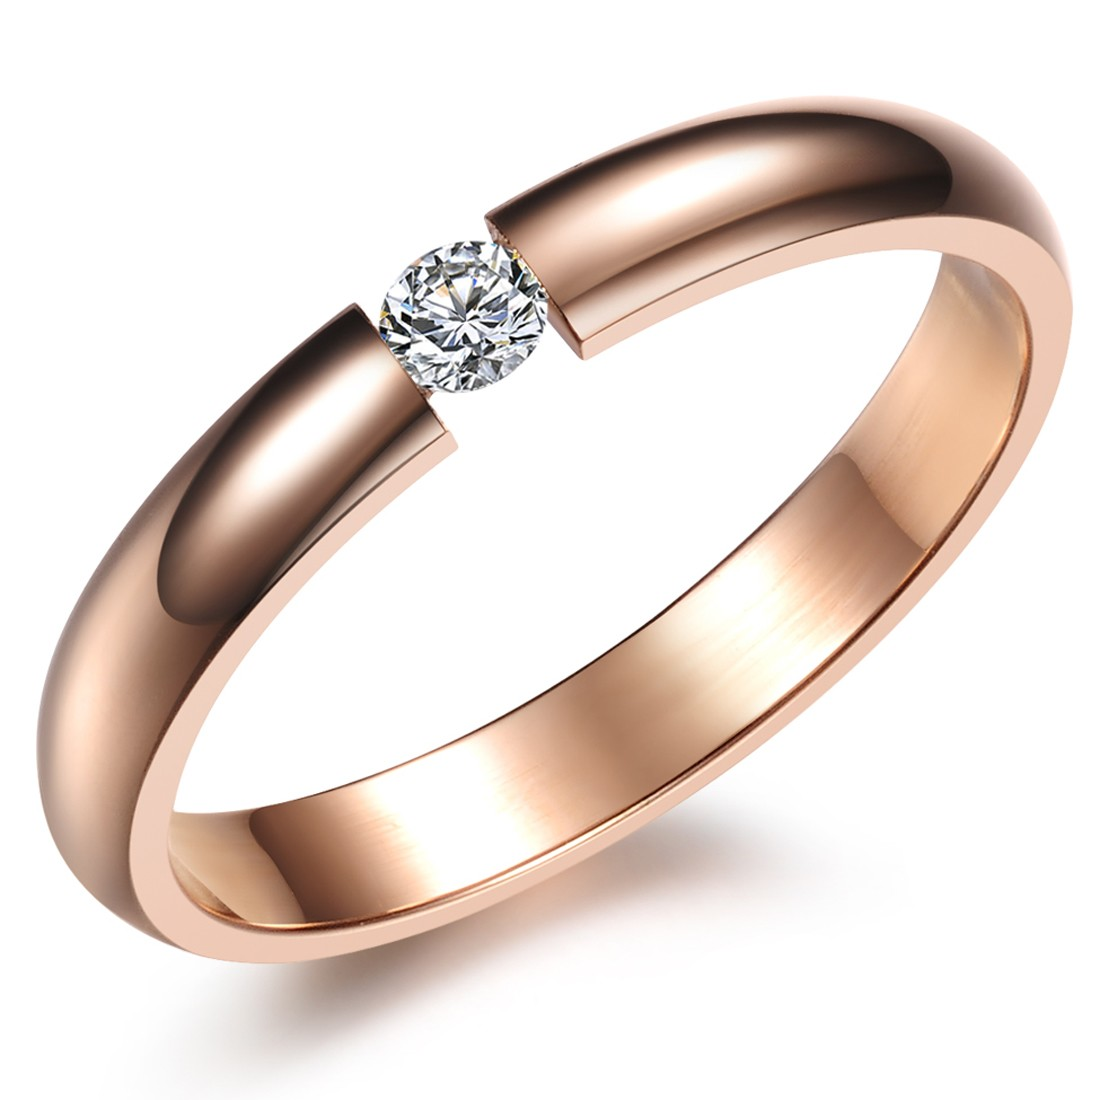 2017 New Fashion Women Jewelry Rose Gold Filled Ring Fine Exquisite Titanium Crystal Rings For Women anillos n373